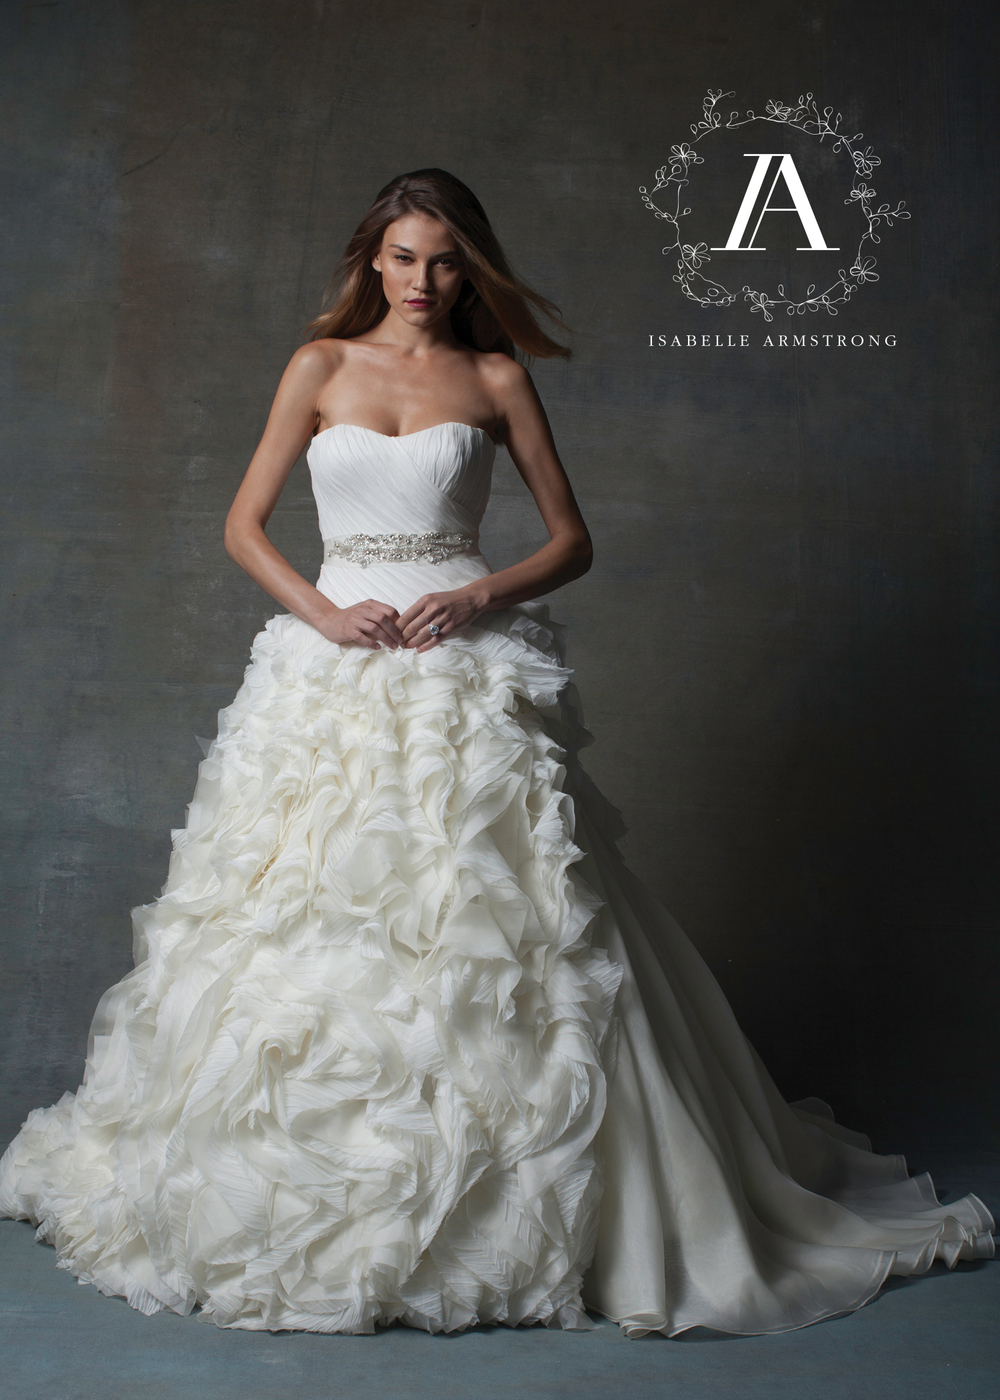 Isabelle Armstrong Bridal Couture Wedding Gown | style Tea